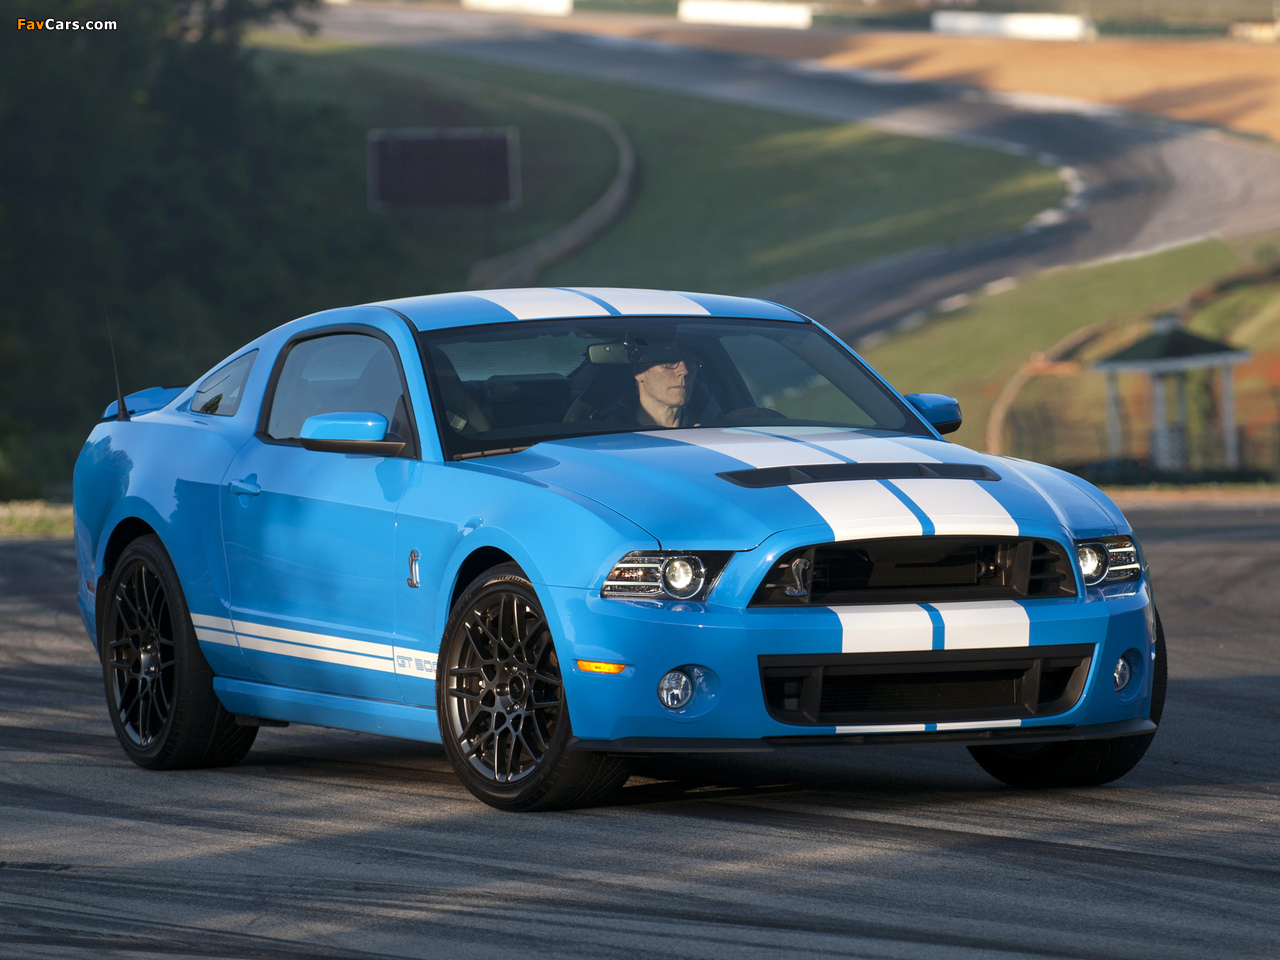 Shelby Gt500 Svt 2012 Pictures 1280x960